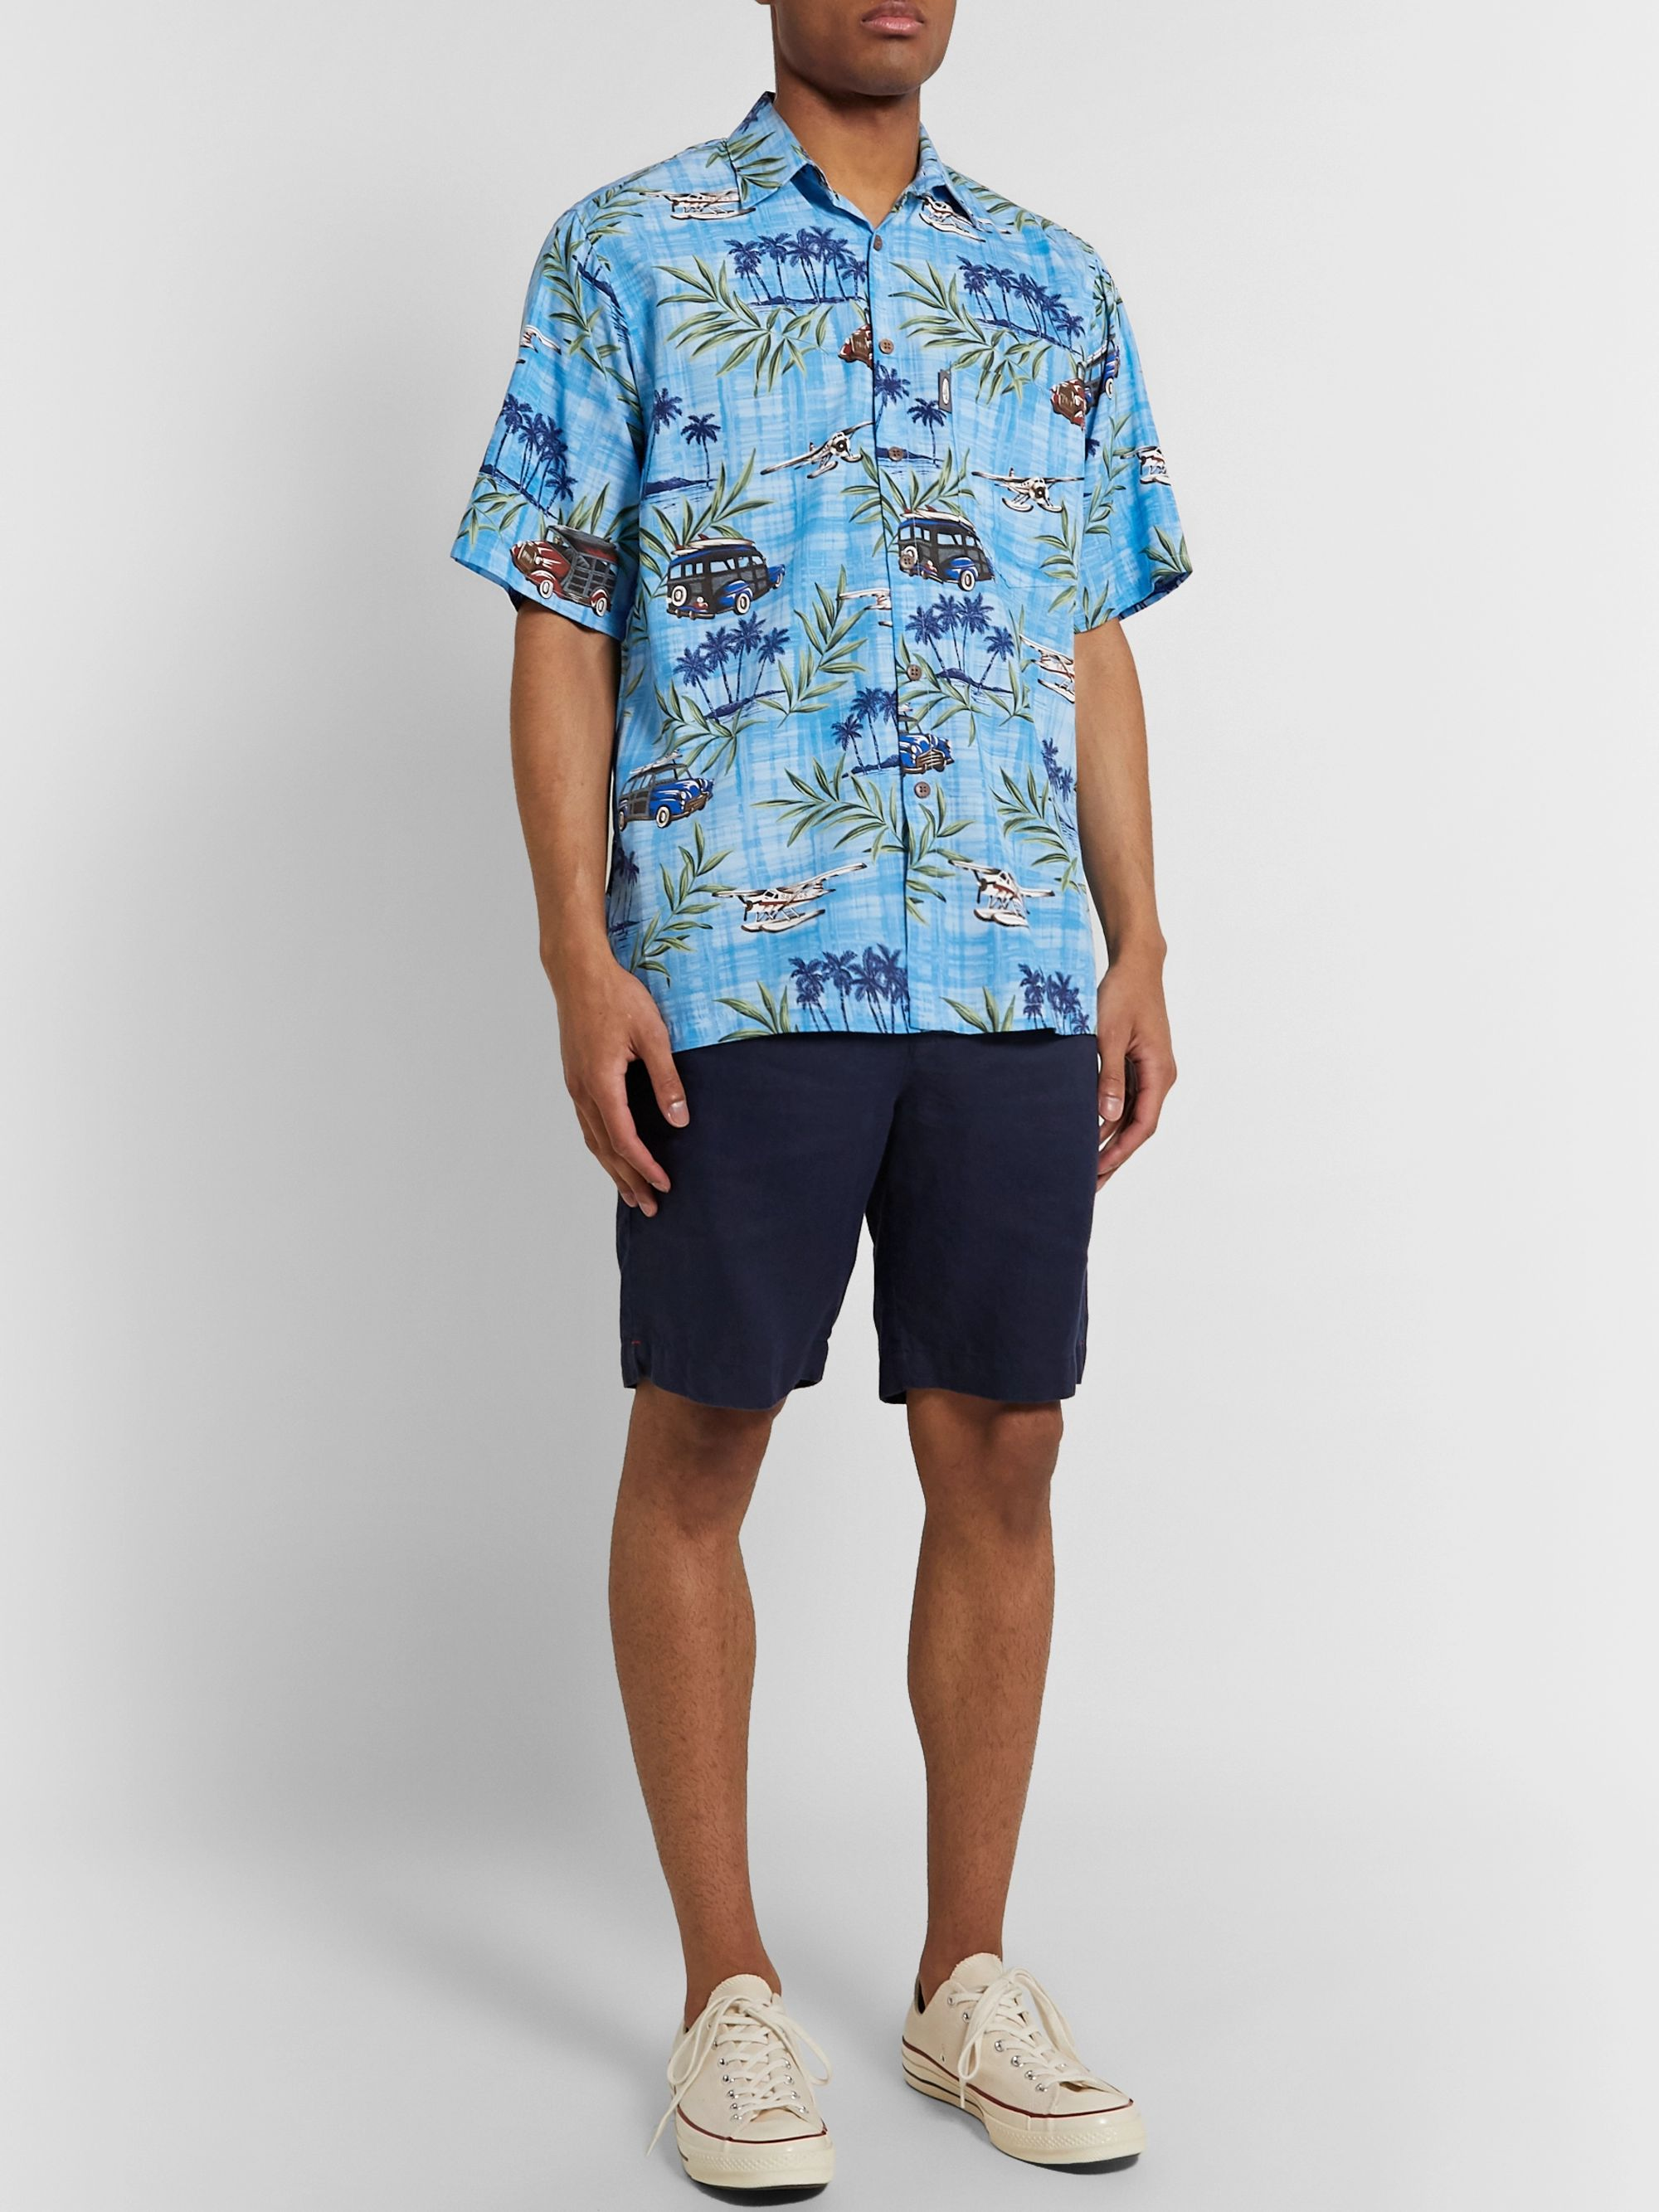 Go Barefoot Sea Plane Printed Cotton-Blend Shirt